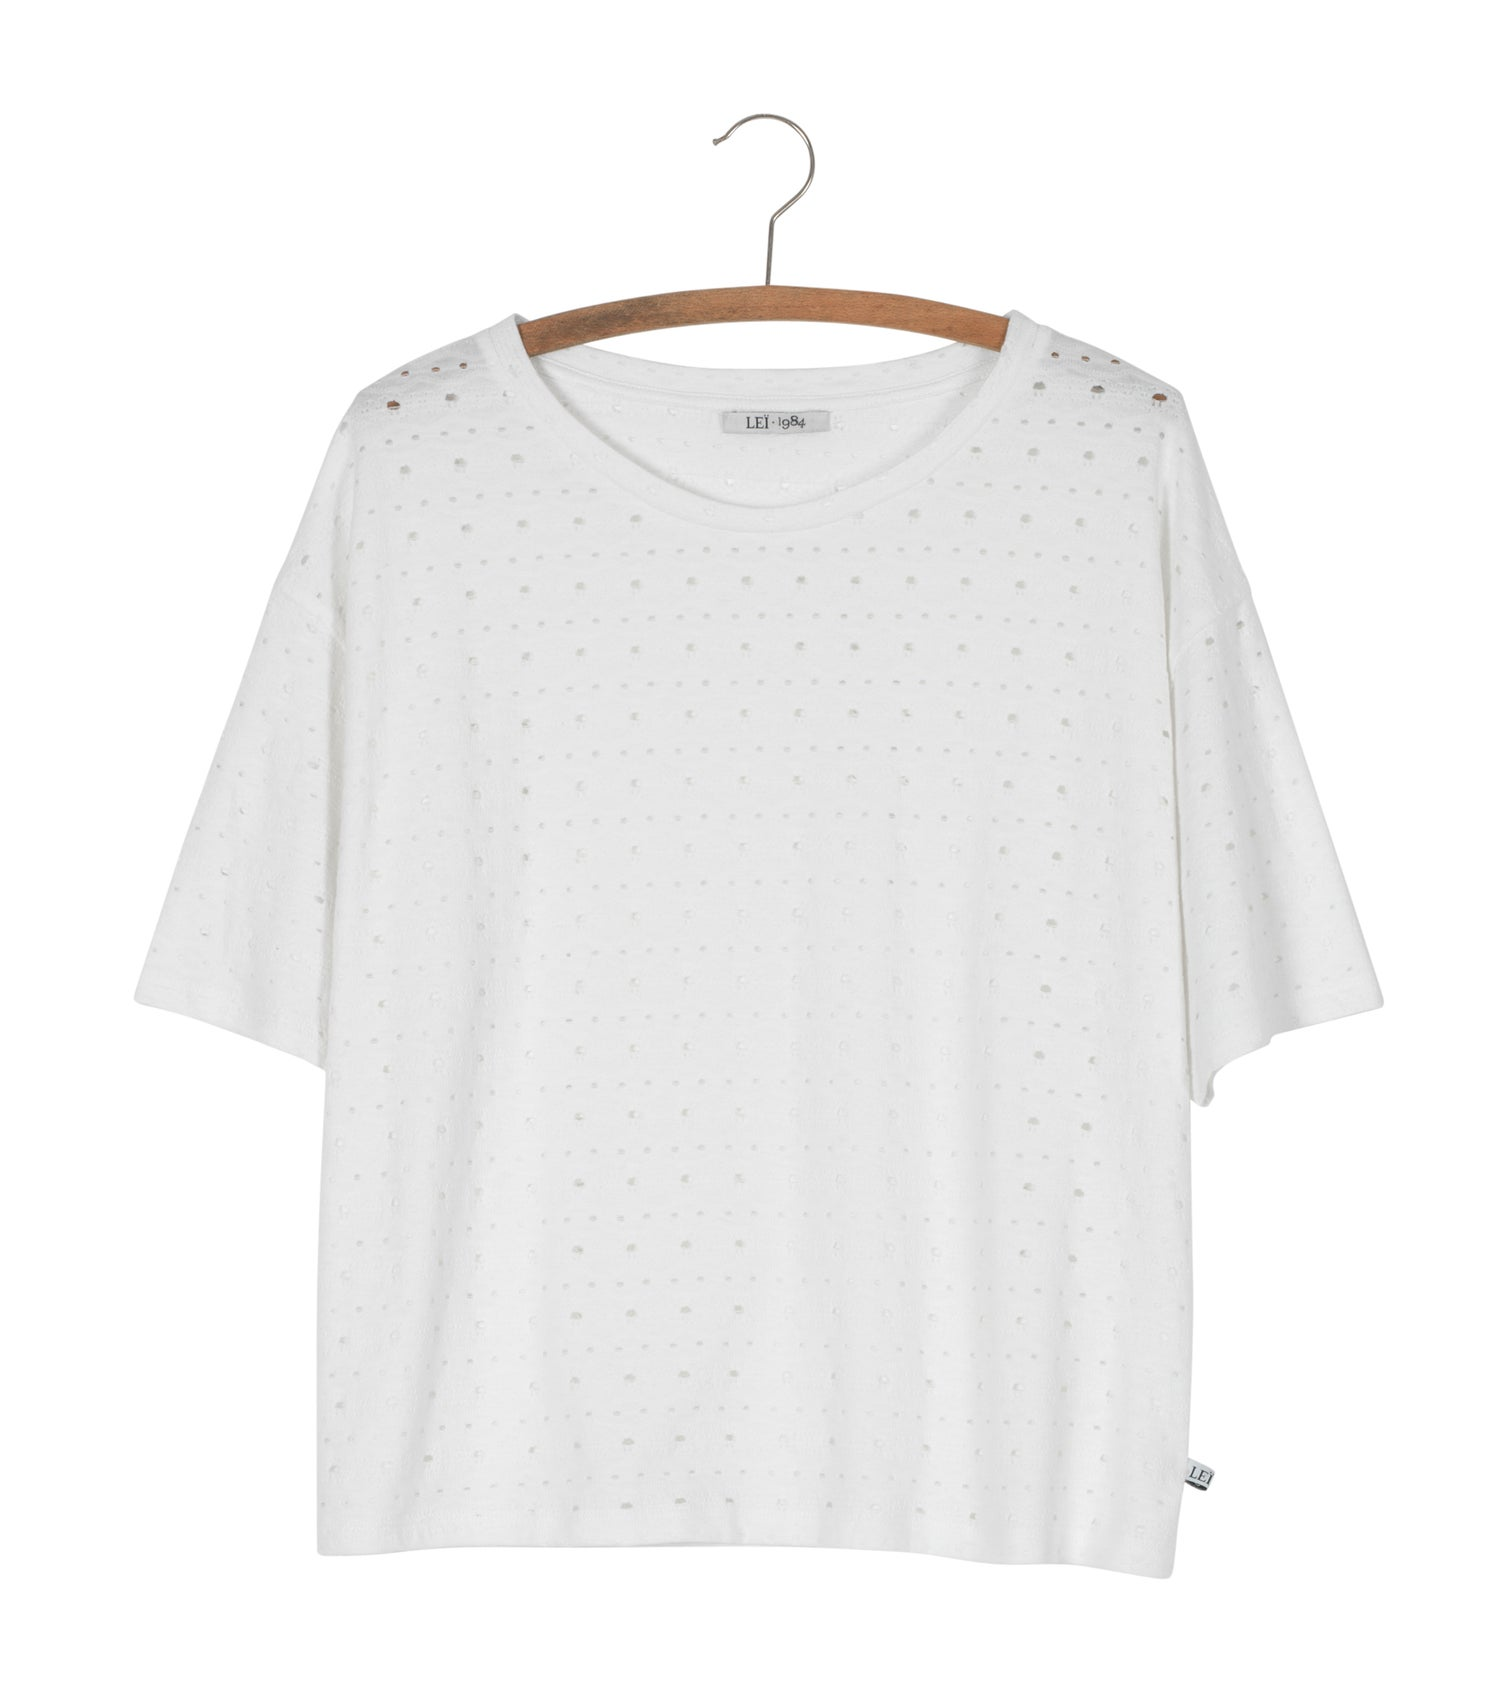 Image of Tee shirt ANTO MC 55€ -50%